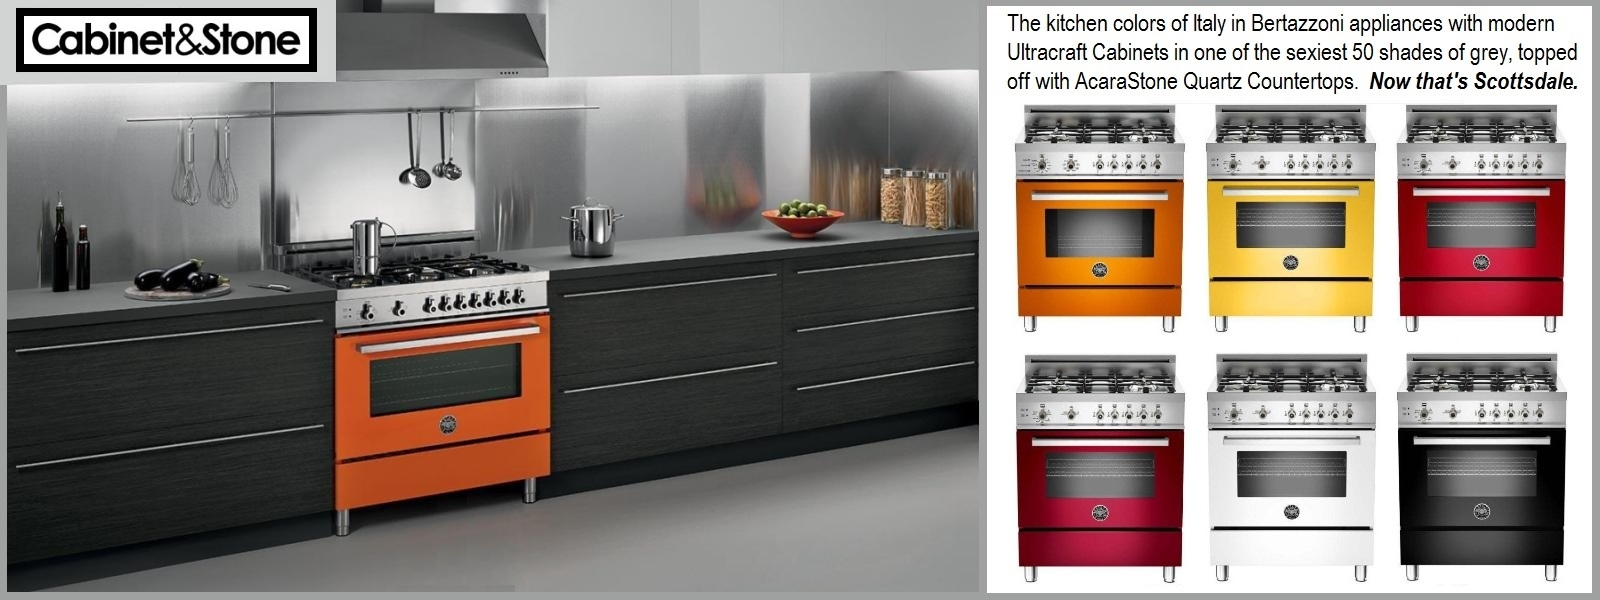 Ultracraft Frameless Kitchen Cabinetsultracraft frameless kitchen cabinets corner storage trays